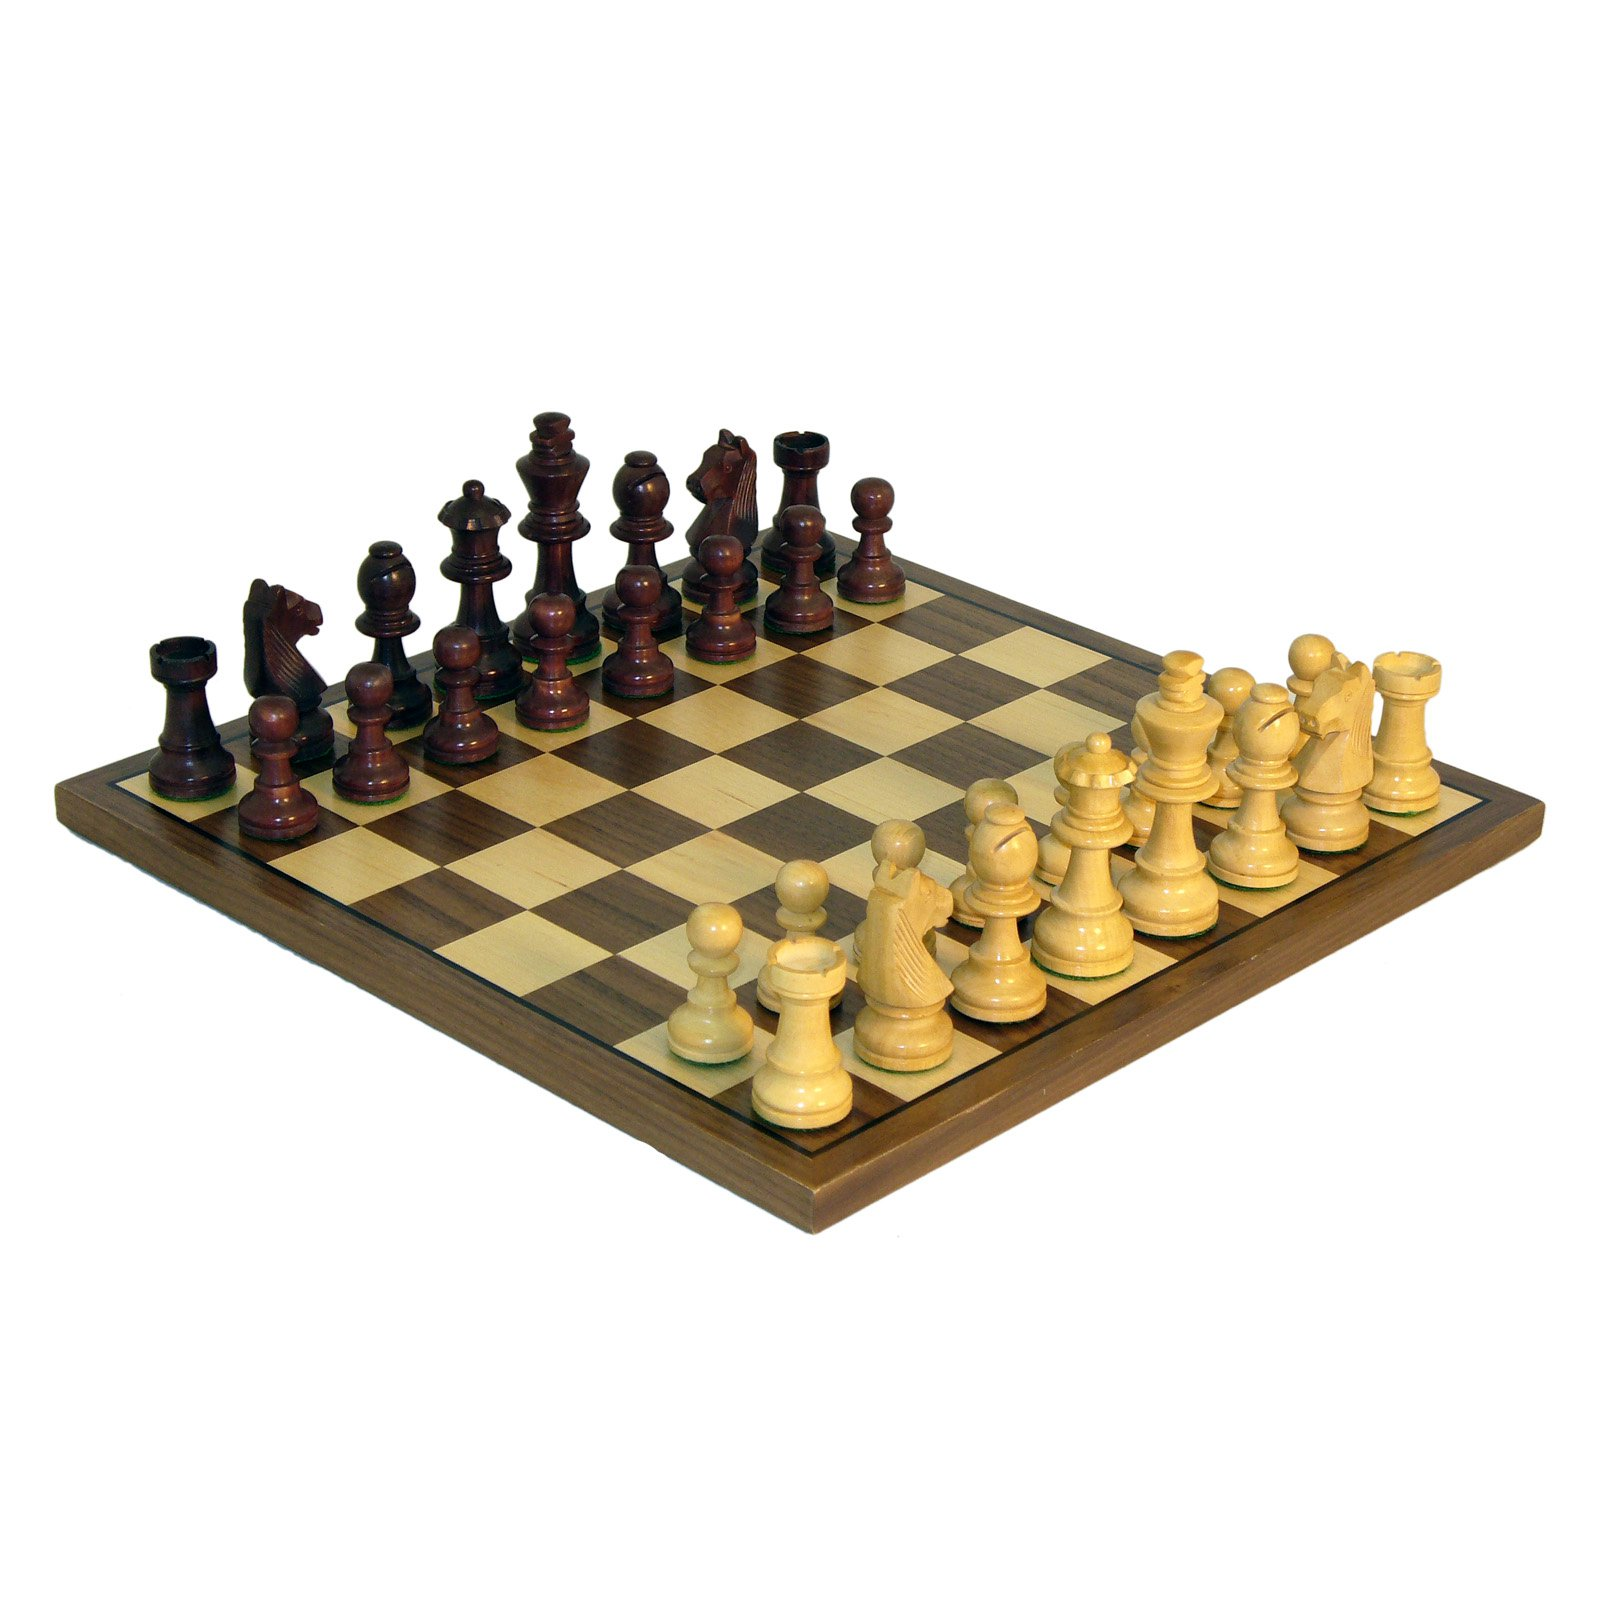 German Knight Chess Set Walnut Stain by World Wise Imports